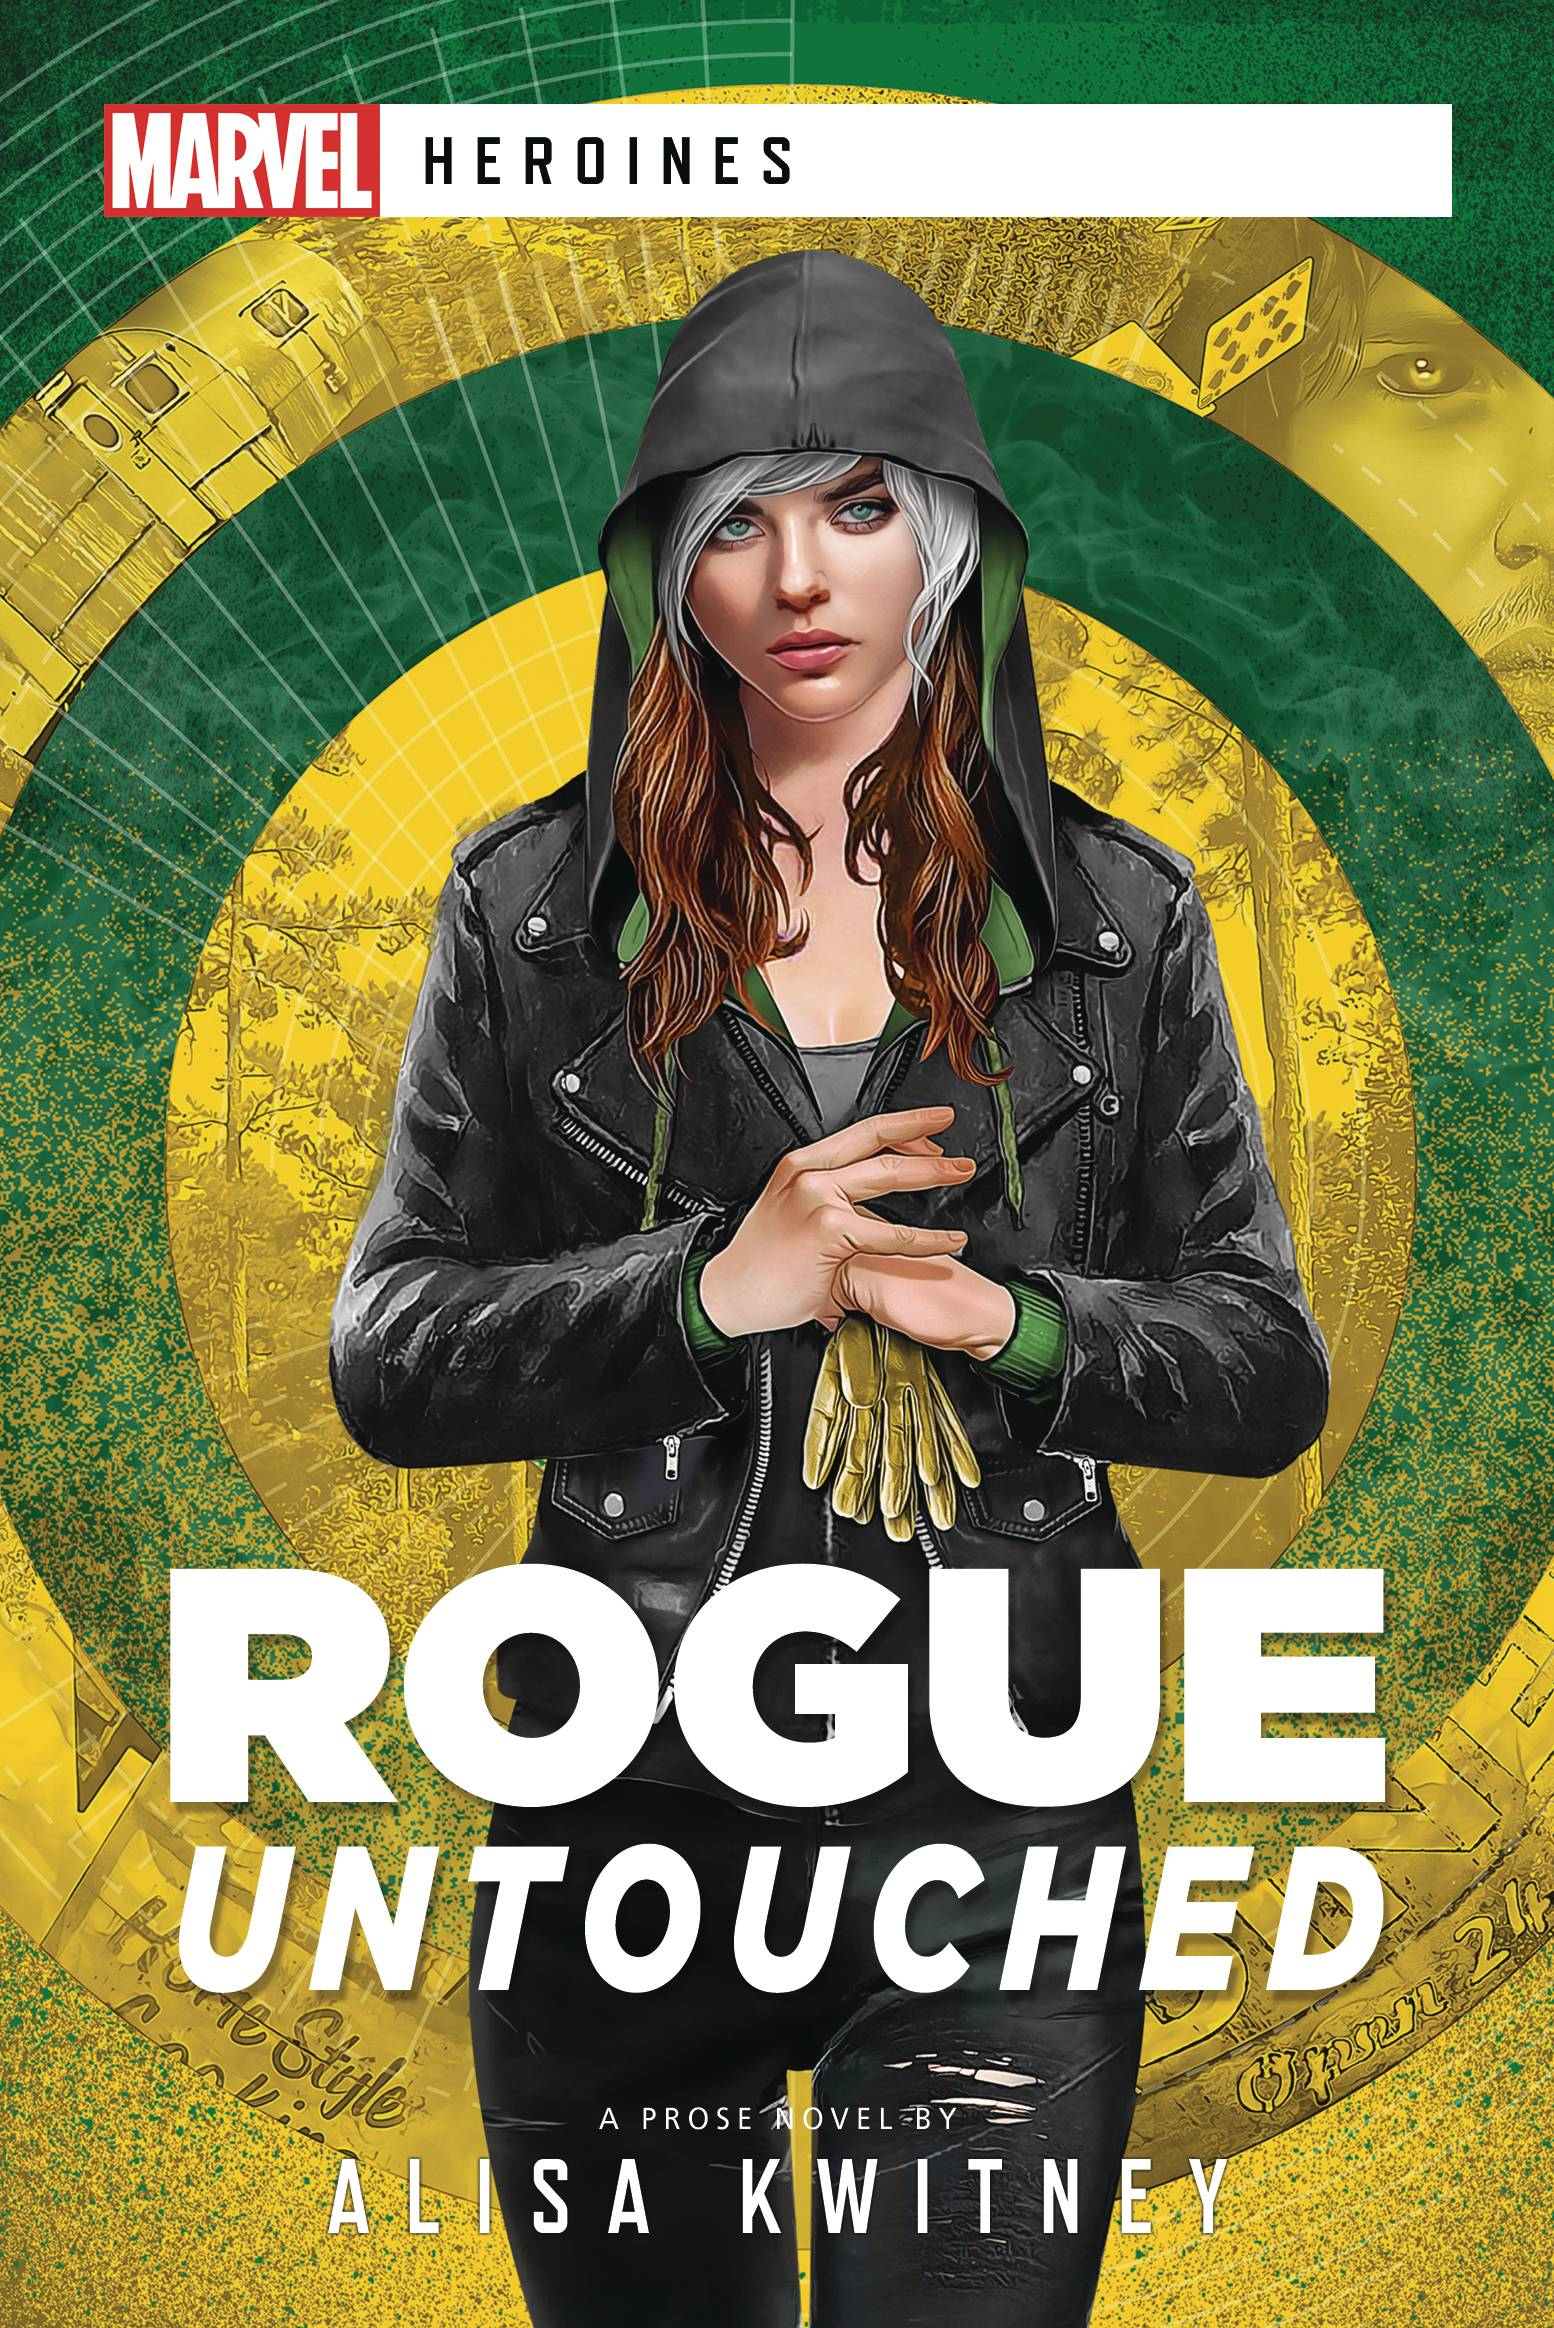 MARVEL HEROINES NOVEL SC ROGUE UNTOUCHED (RES)